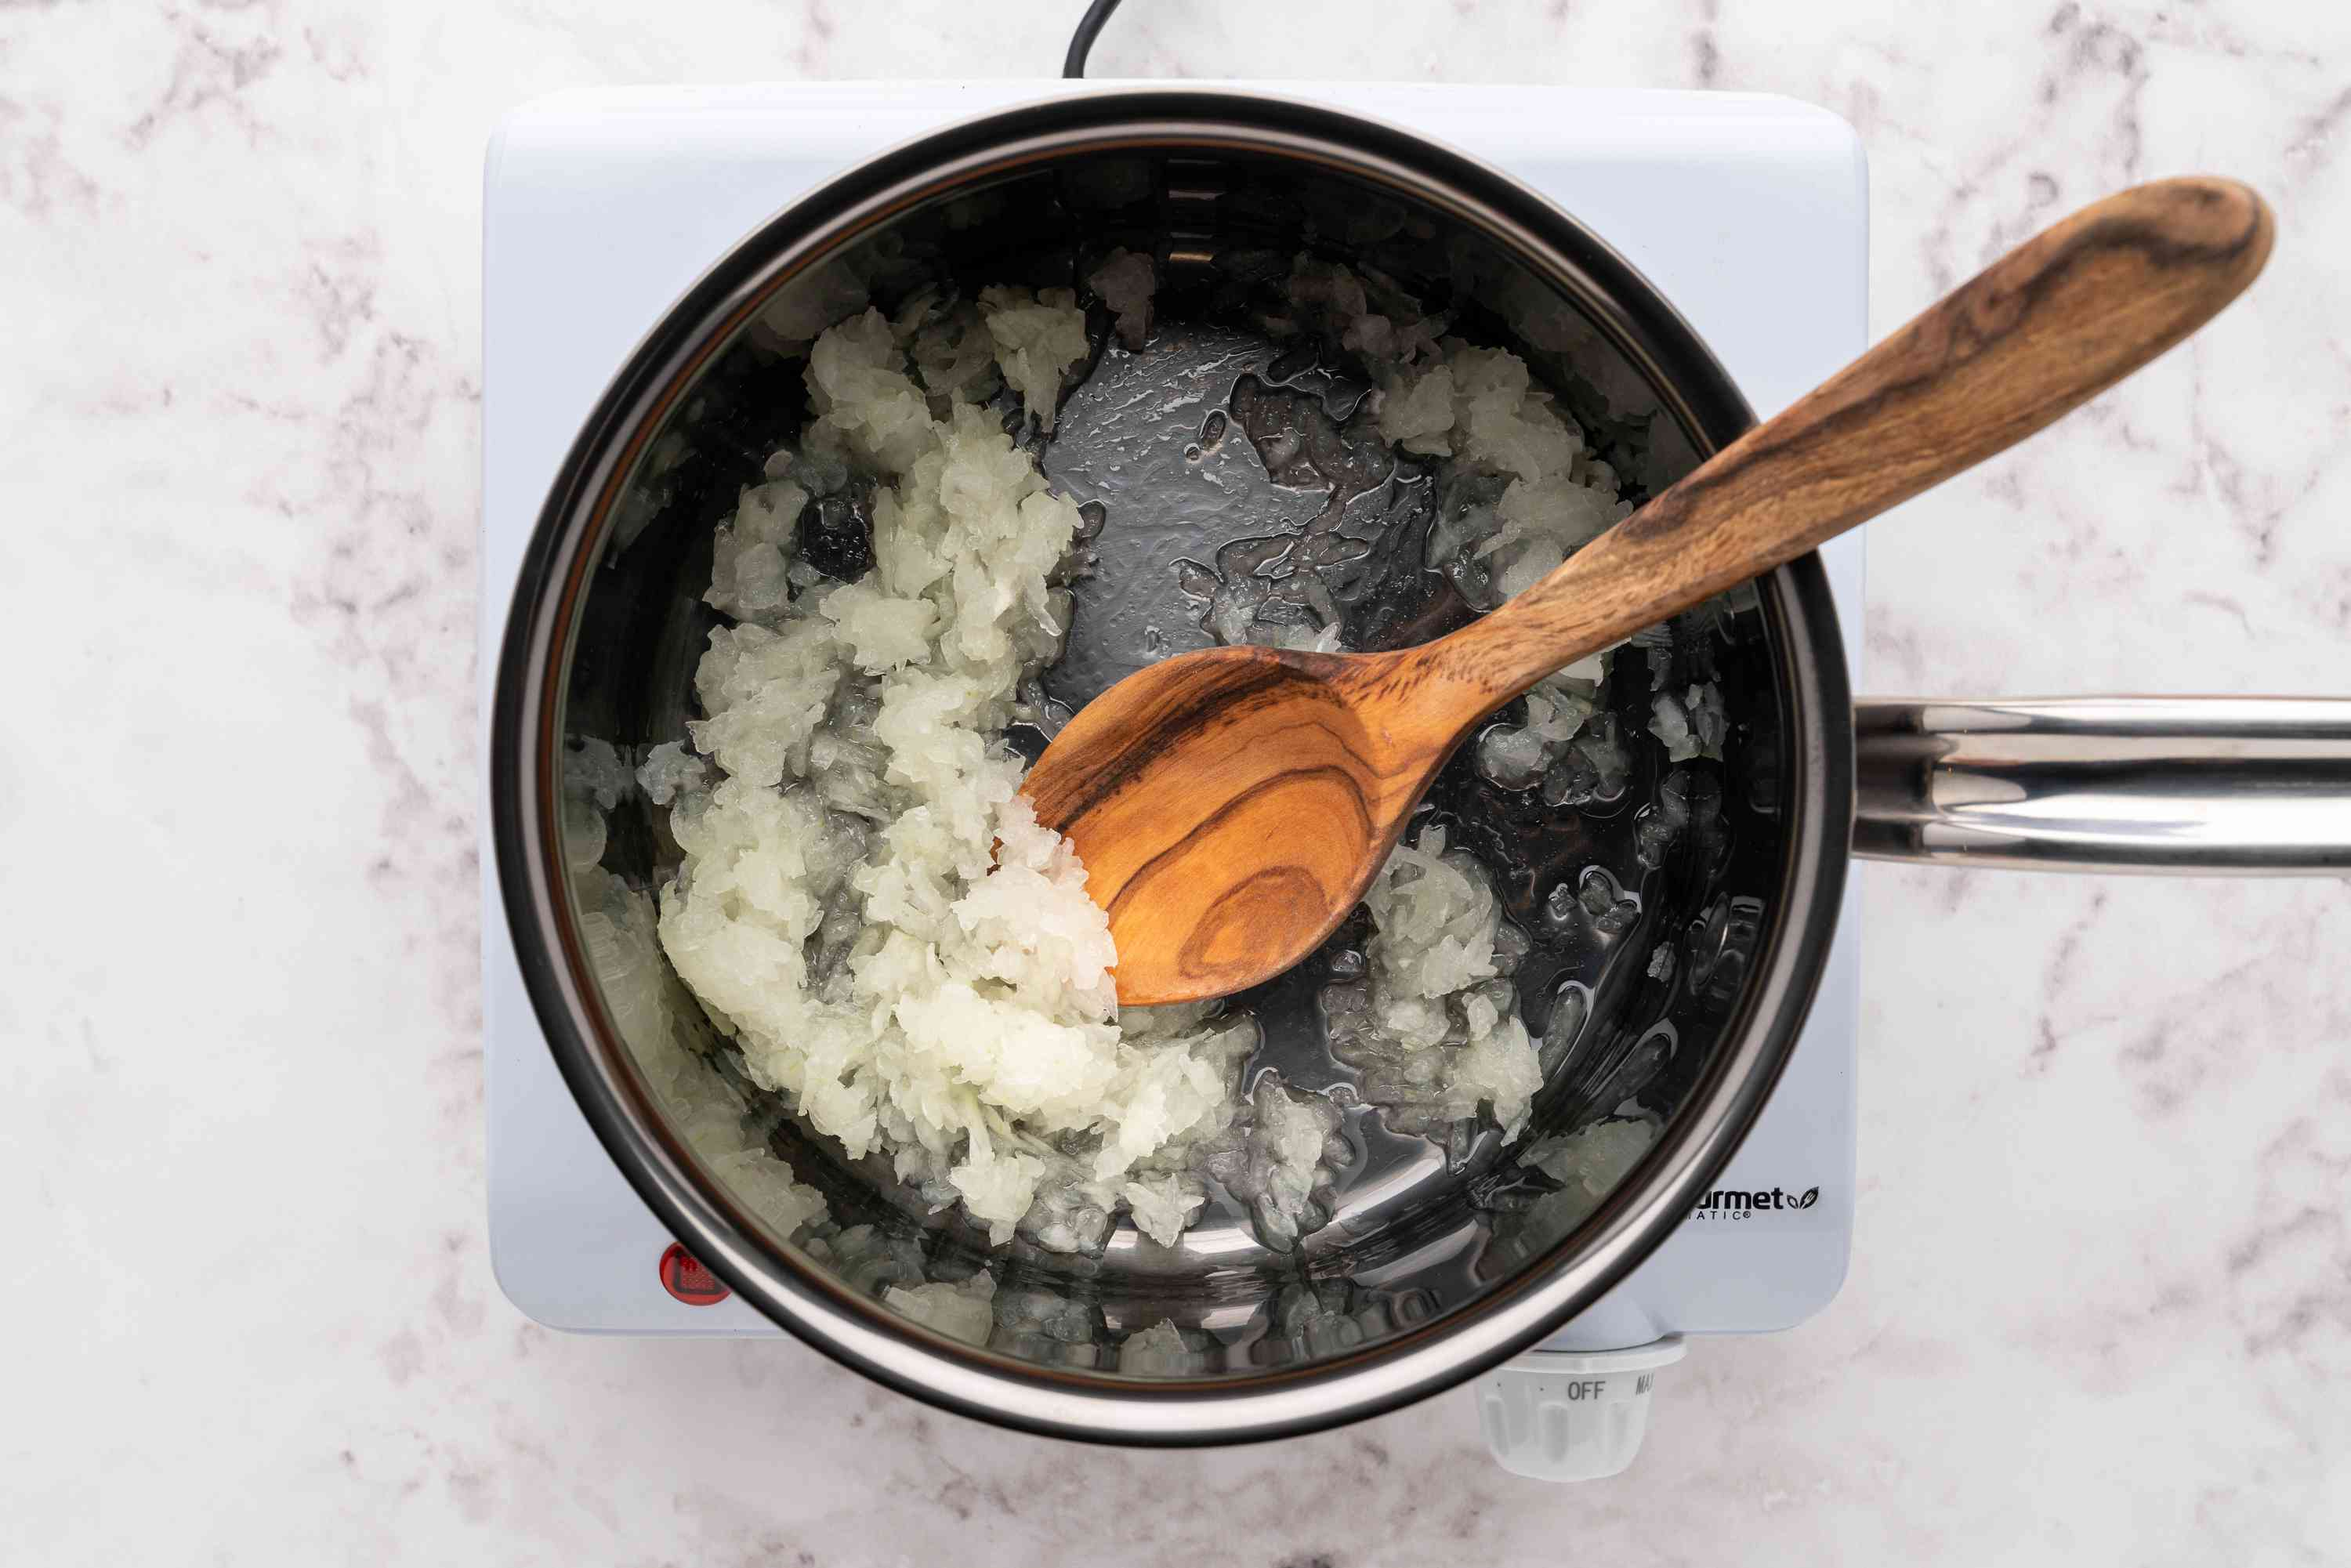 grated onions cooking in a saucepan